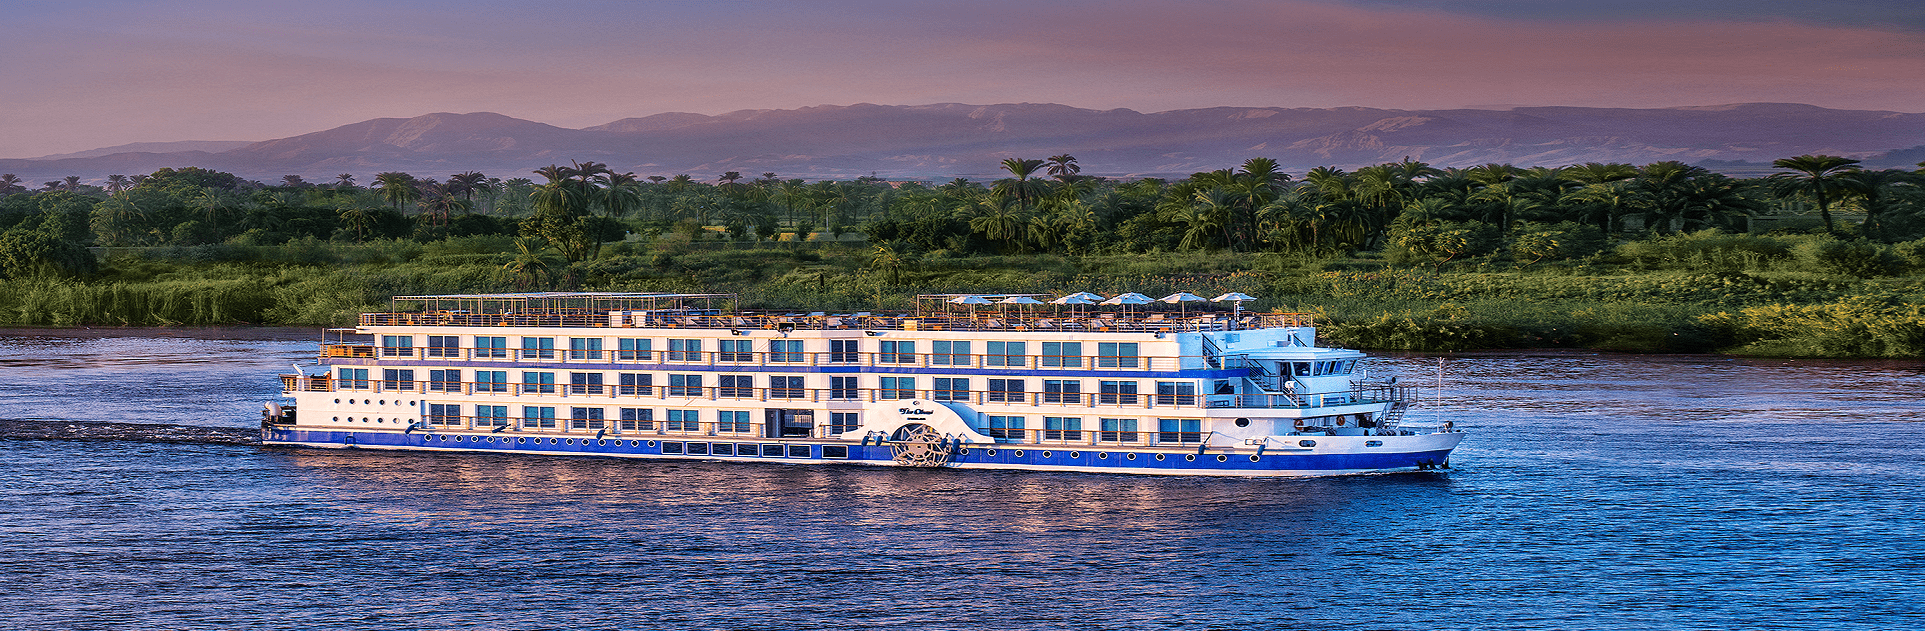 Our Nile Cruise packages